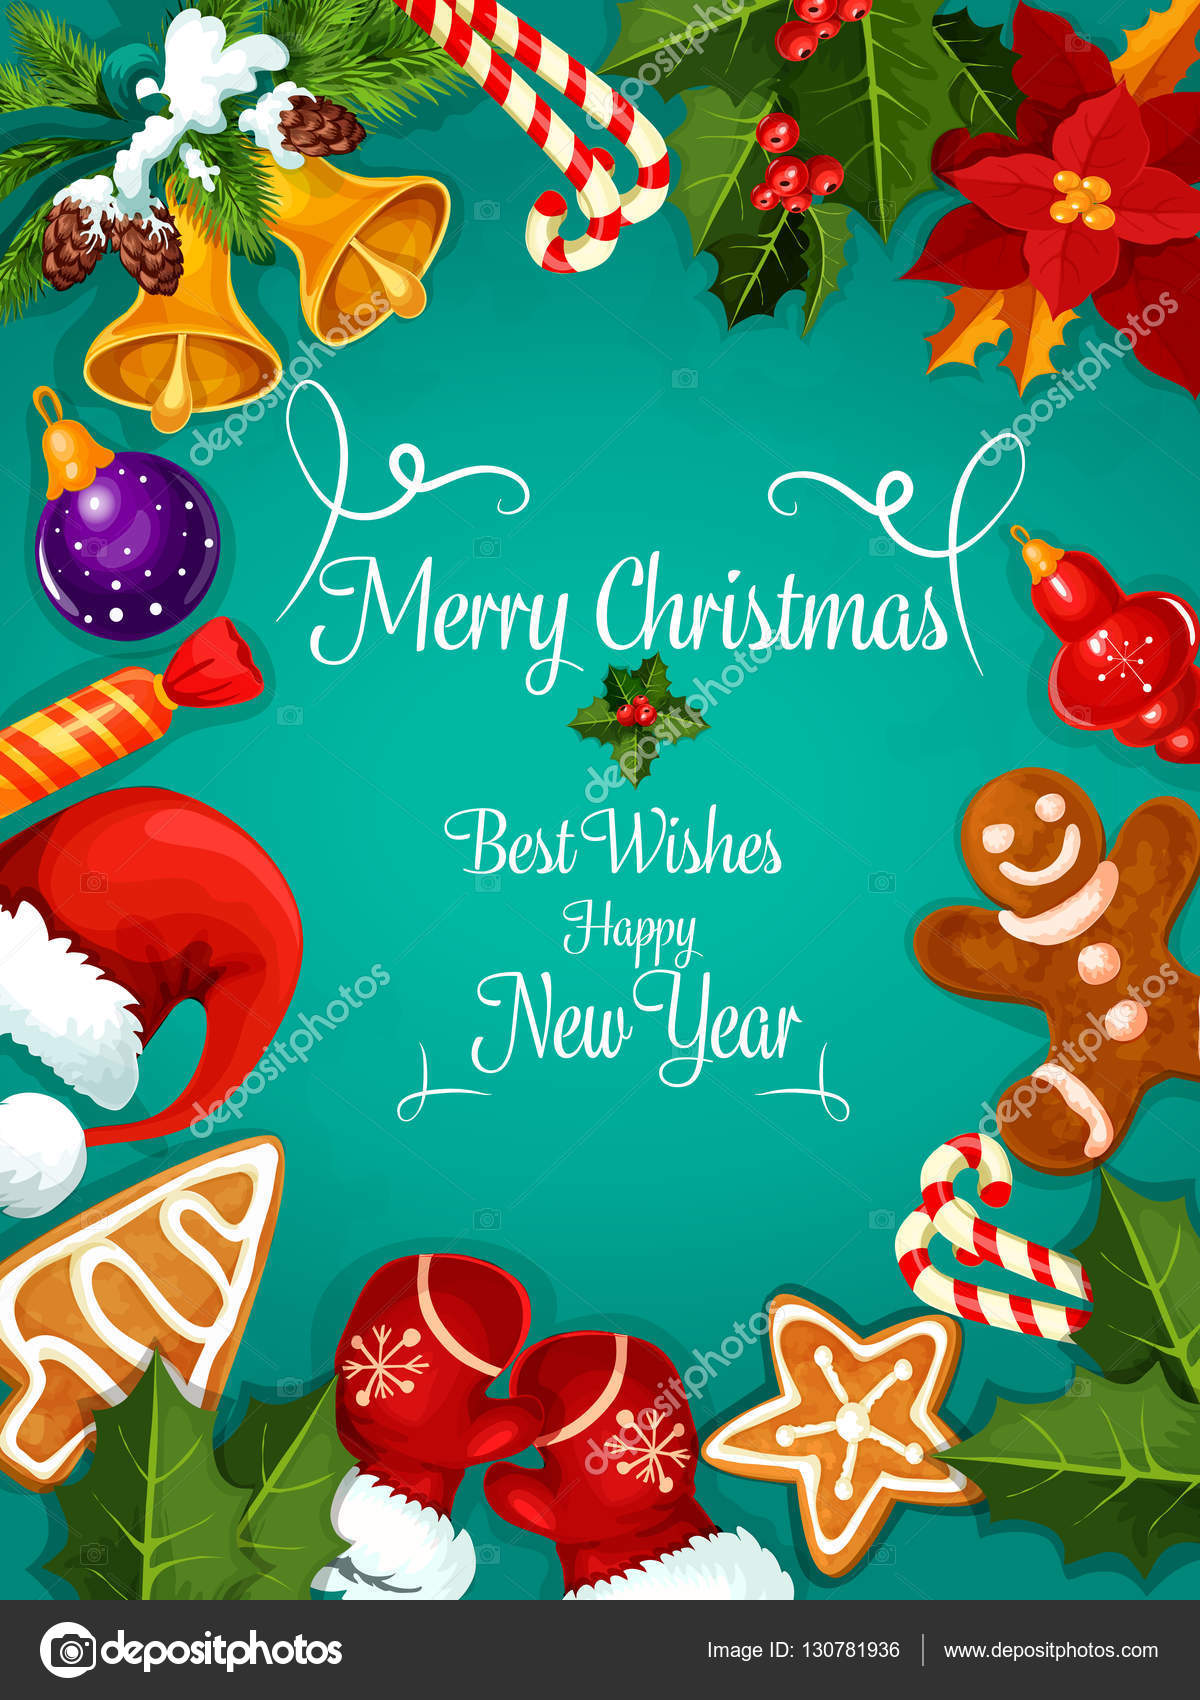 Merry christmas new year best wishes greeting stock vector merry christmas and new year greeting card poster best wishes congratulations fro new year and christmas holidays celebration m4hsunfo